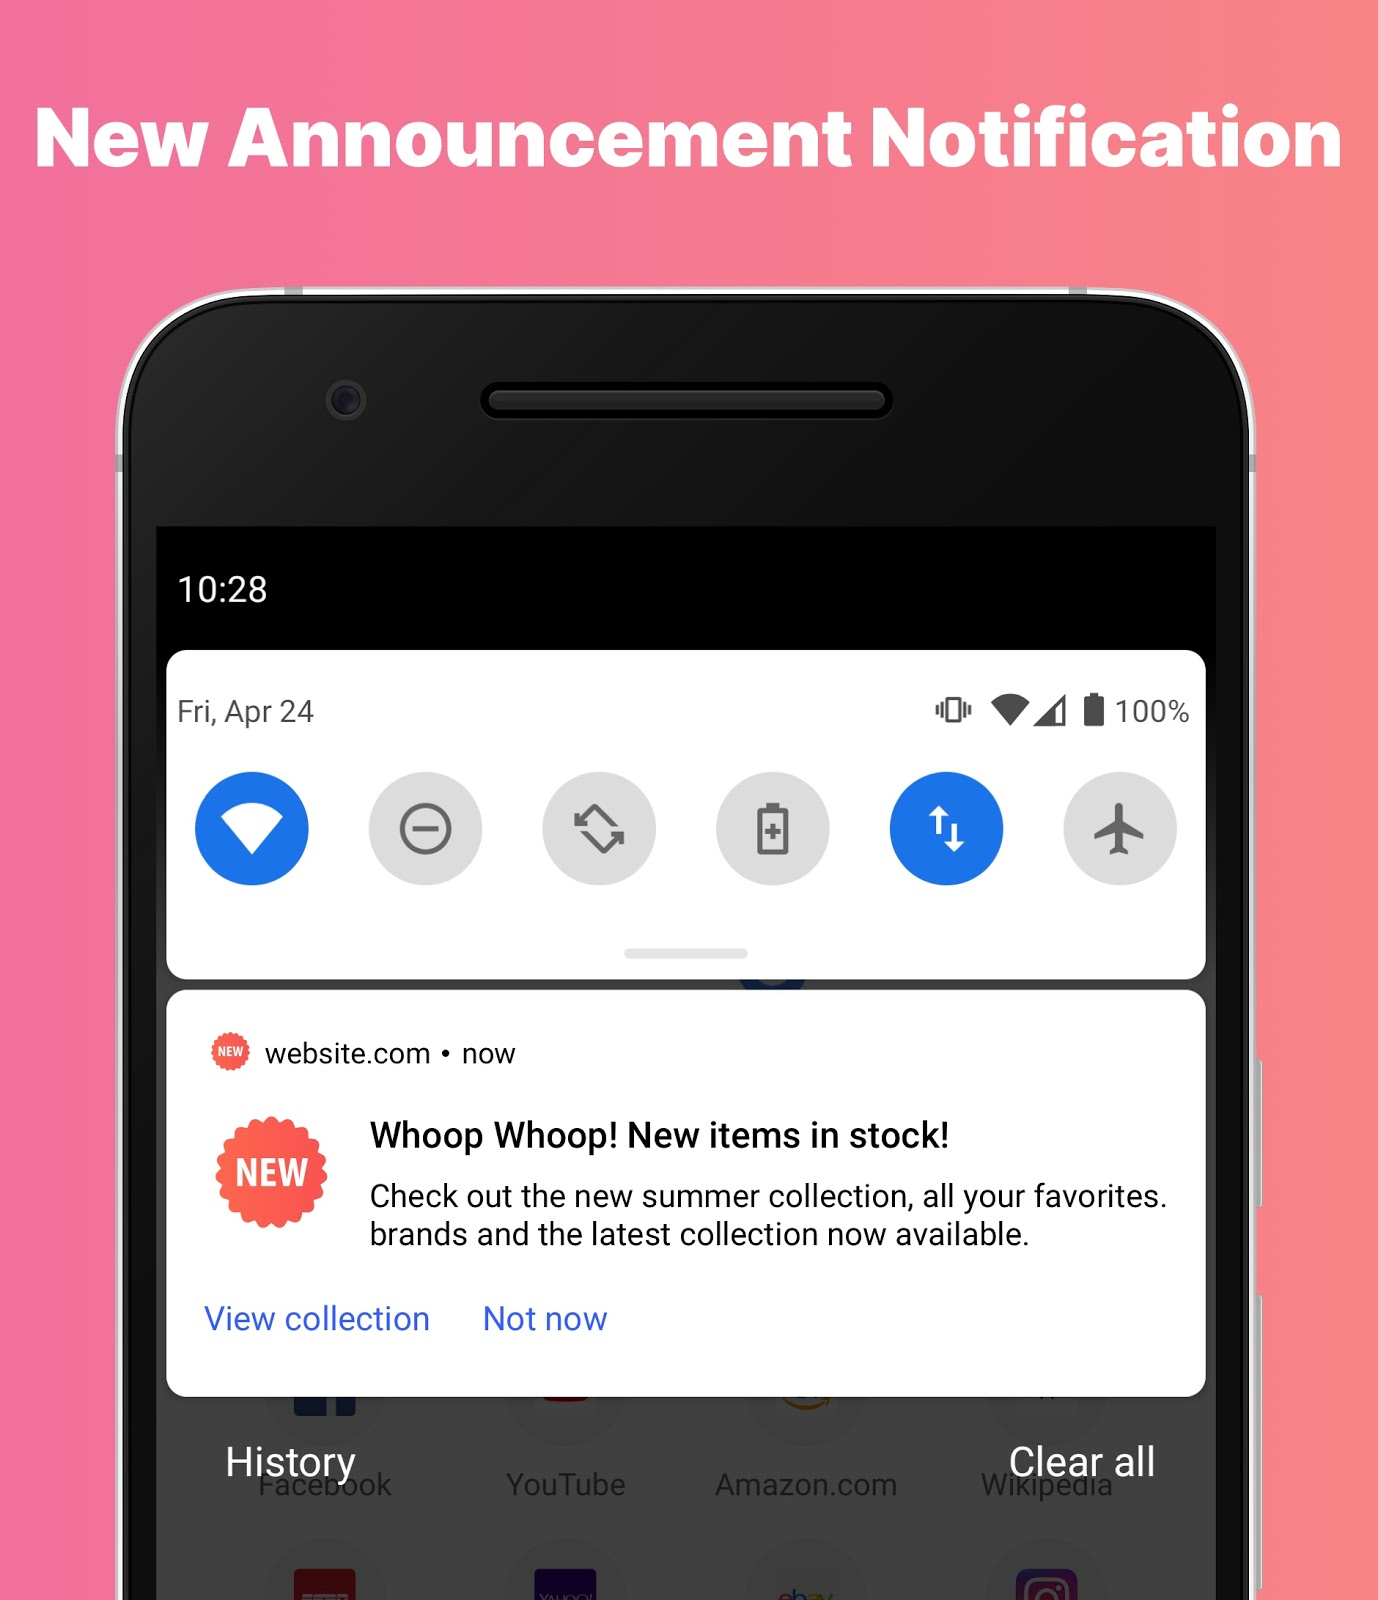 Example of a new announcement push notification